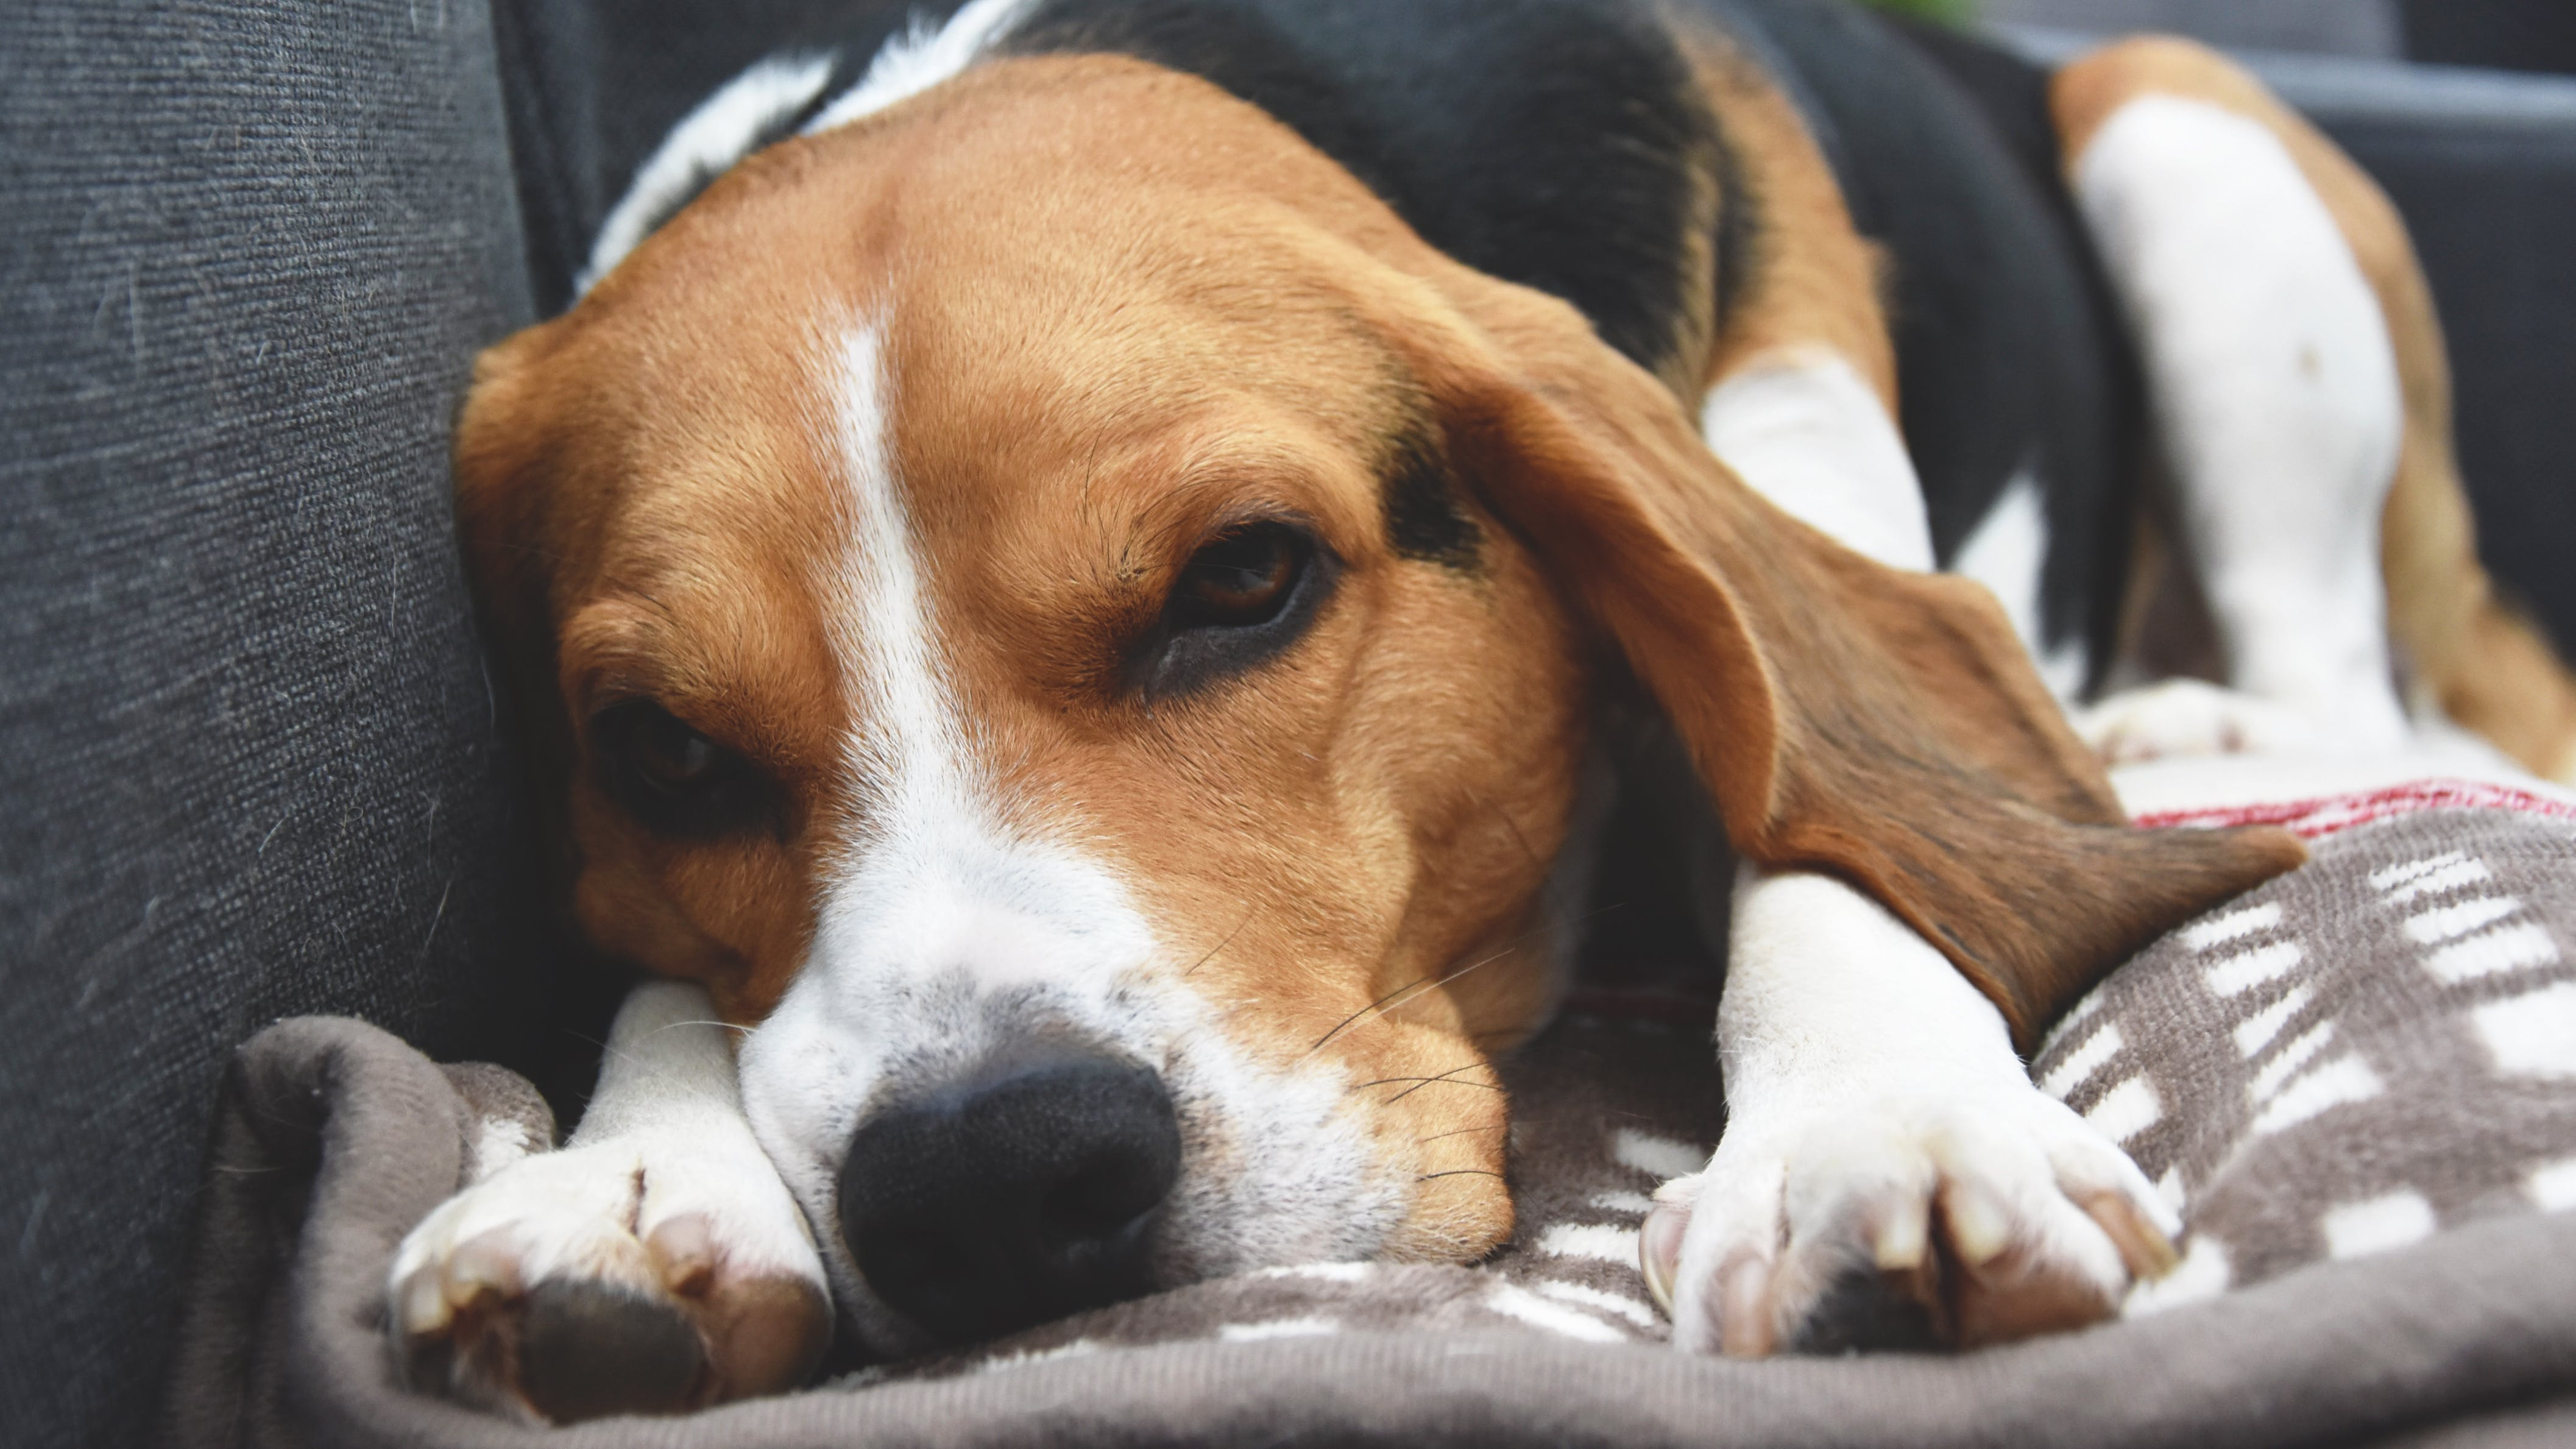 Free stock photo of beagle, close-up, cosy, cute